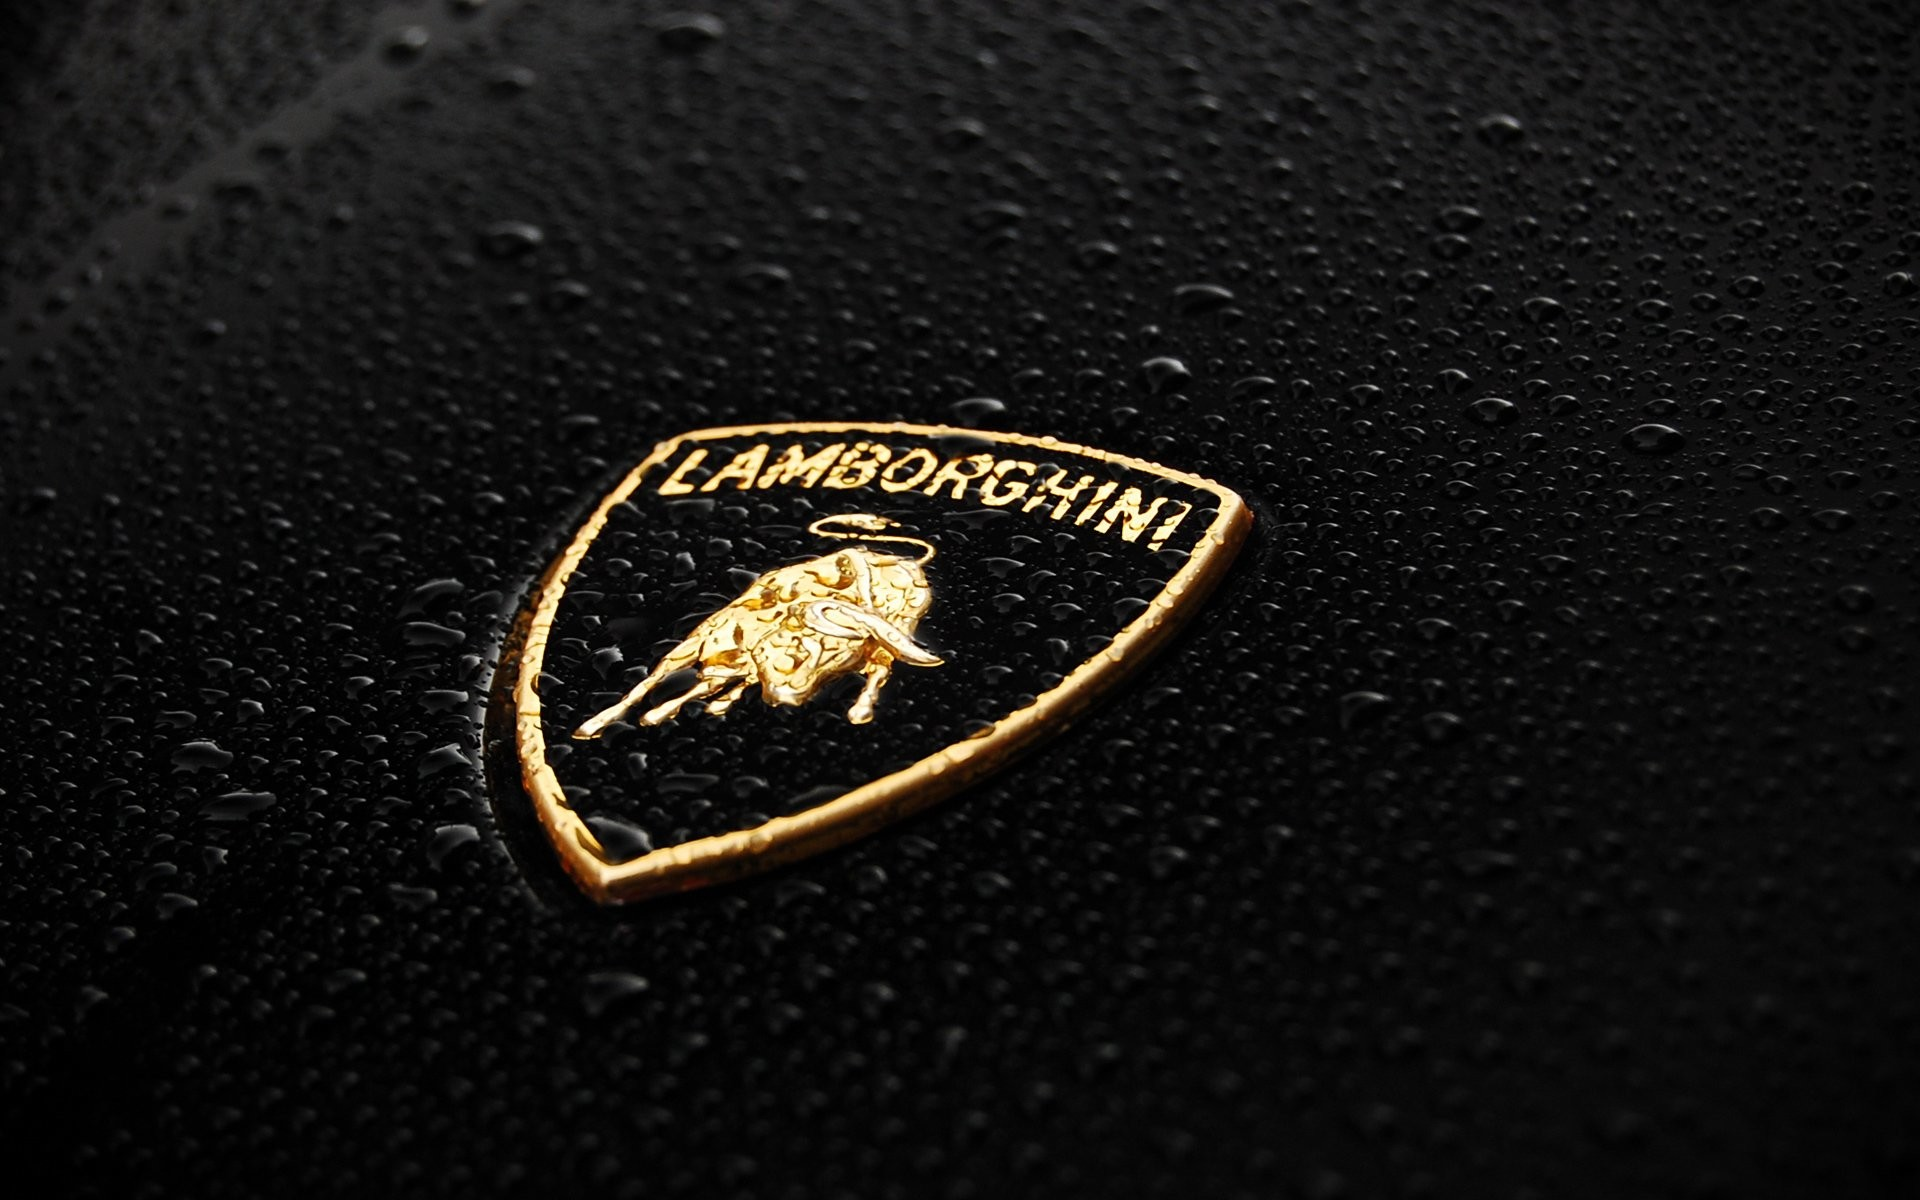 1920x1200 Lamborghini Logo Wallpaper 795409. TAGS: Cool Bulls Logo Lamborghini Chicago